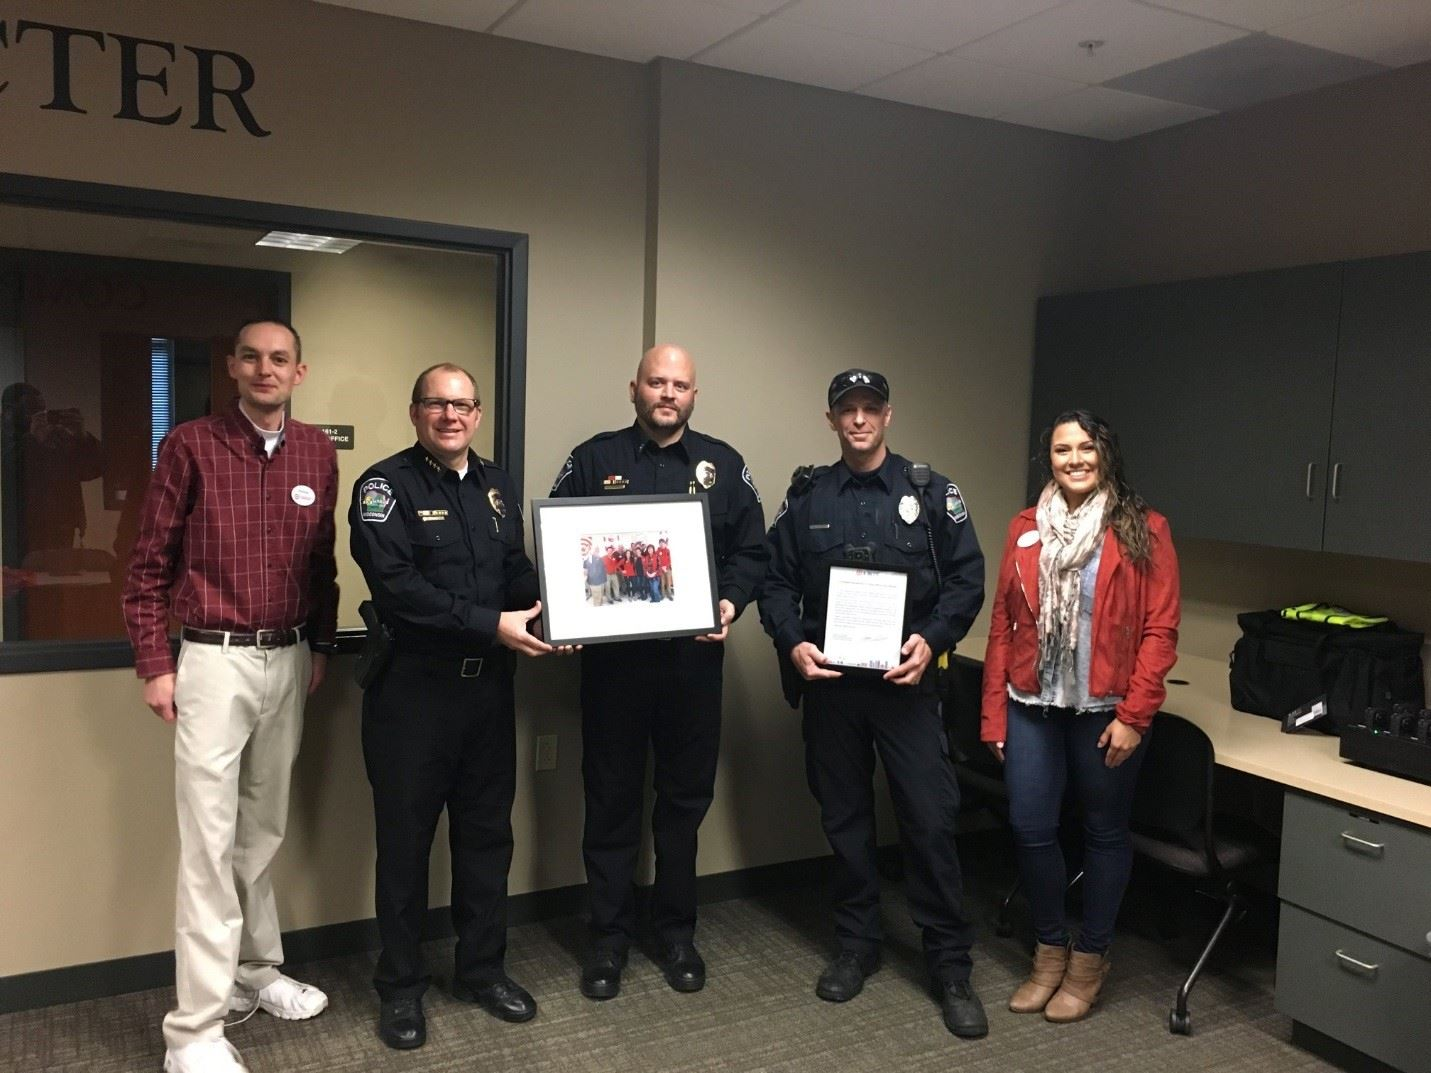 Officer Nichols with Target Employees holding a frame